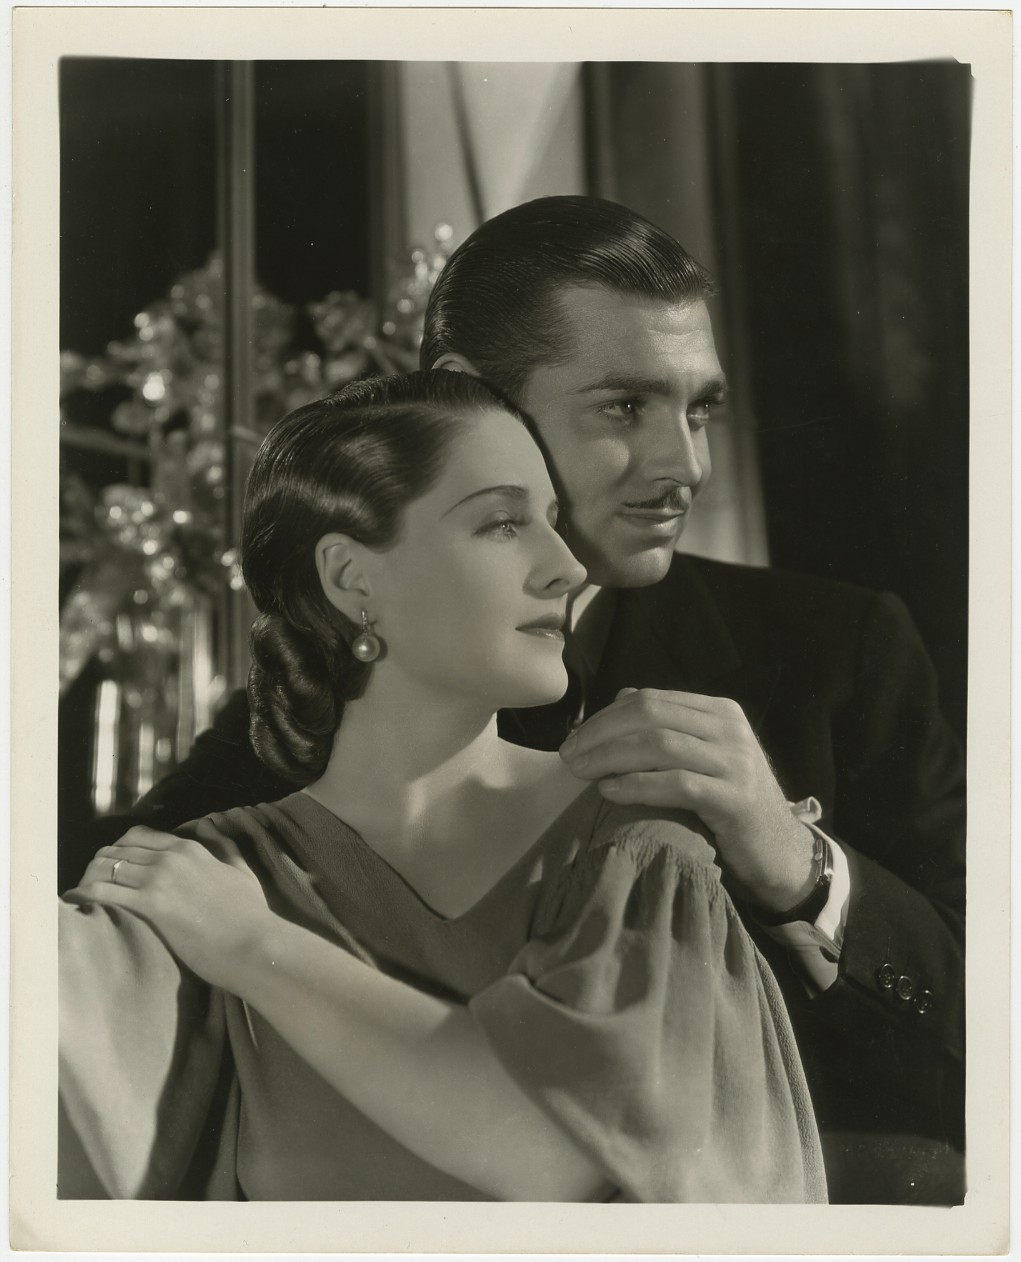 Norma Shearer and Clark Gable, photographed by GeorgeHurrell